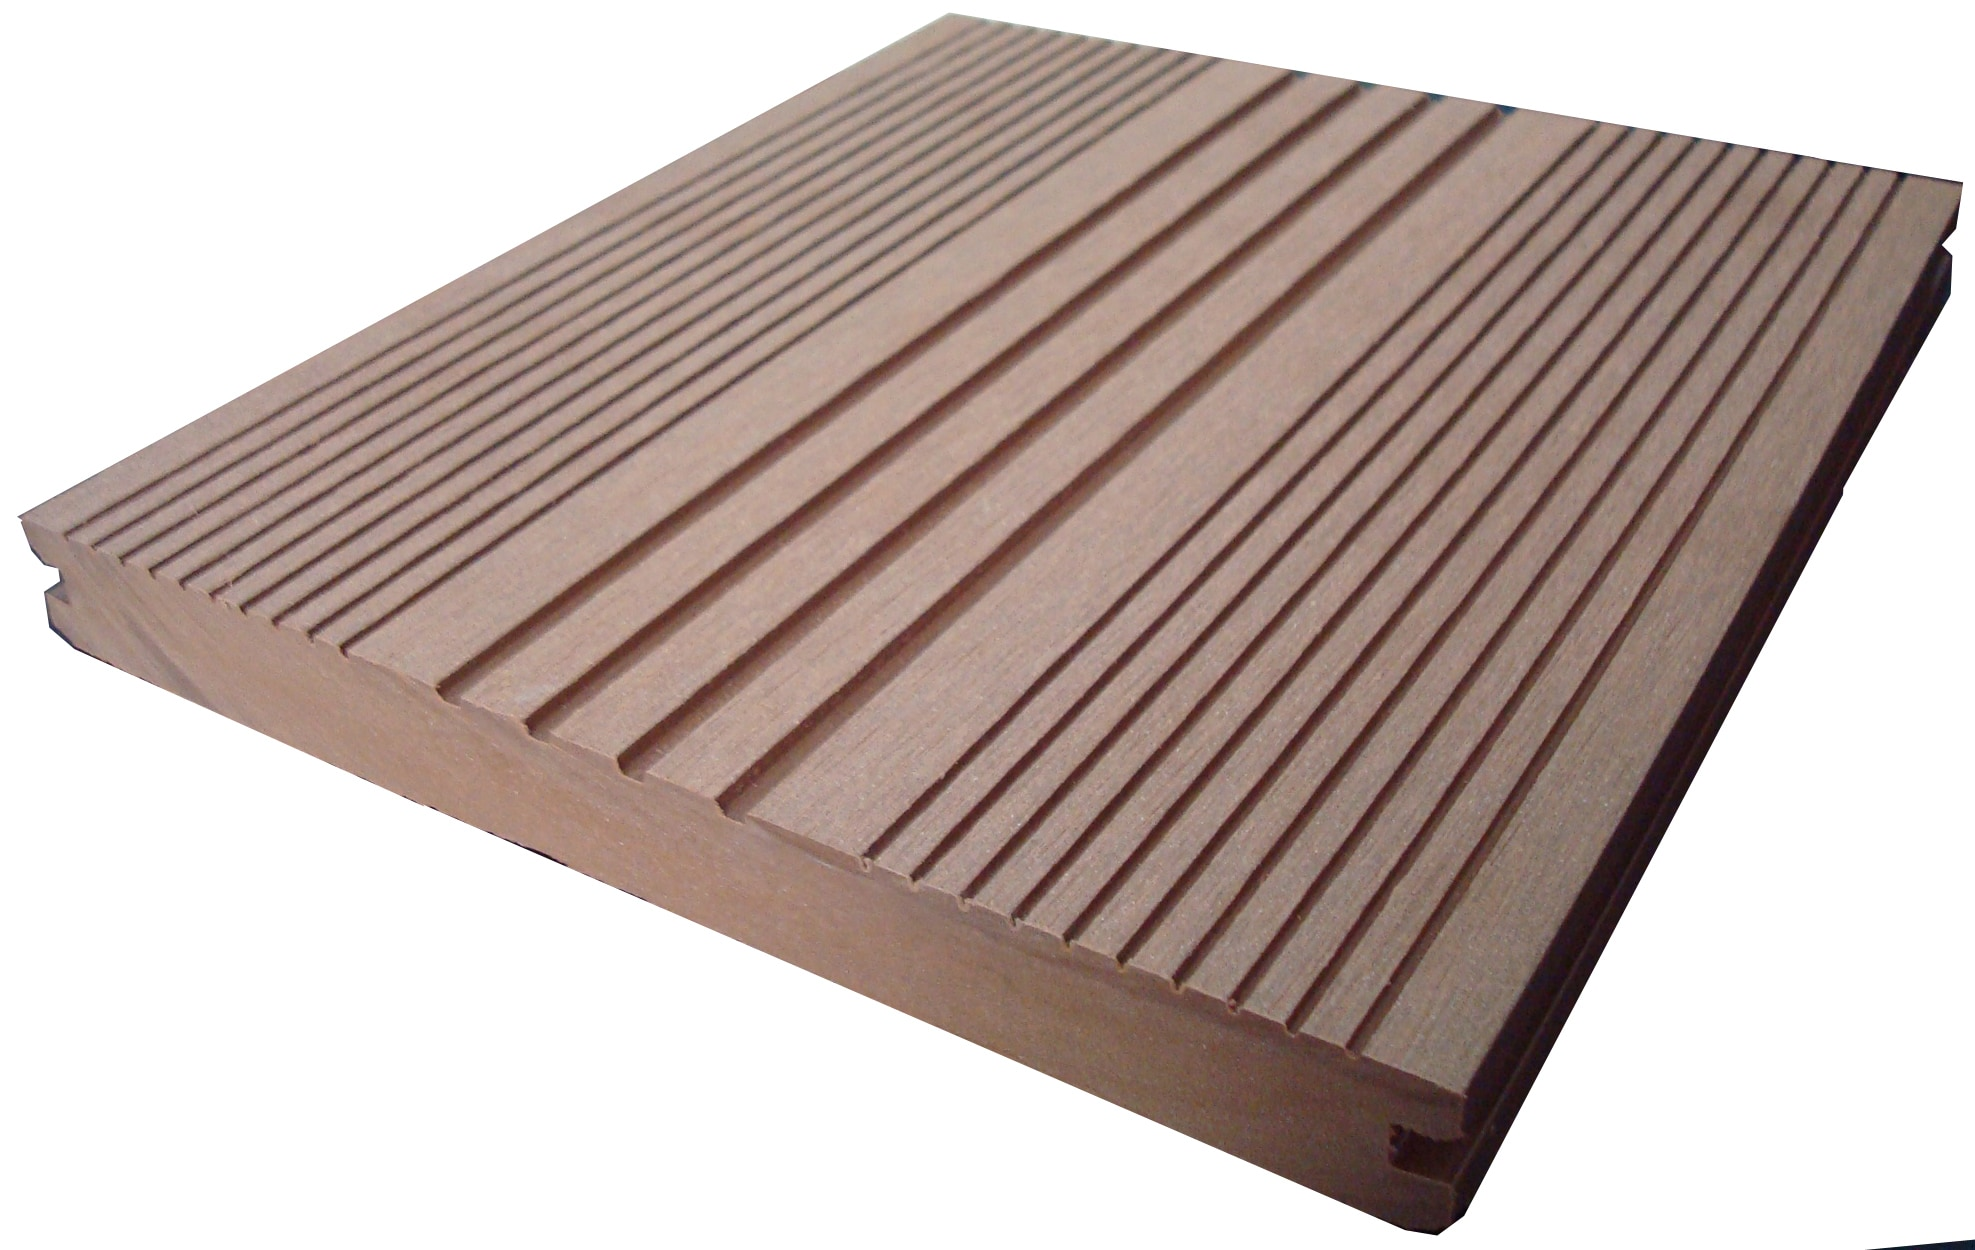 Ep decking ep wood plastic composite decking mocha 7 1 8 for Timber decking thickness